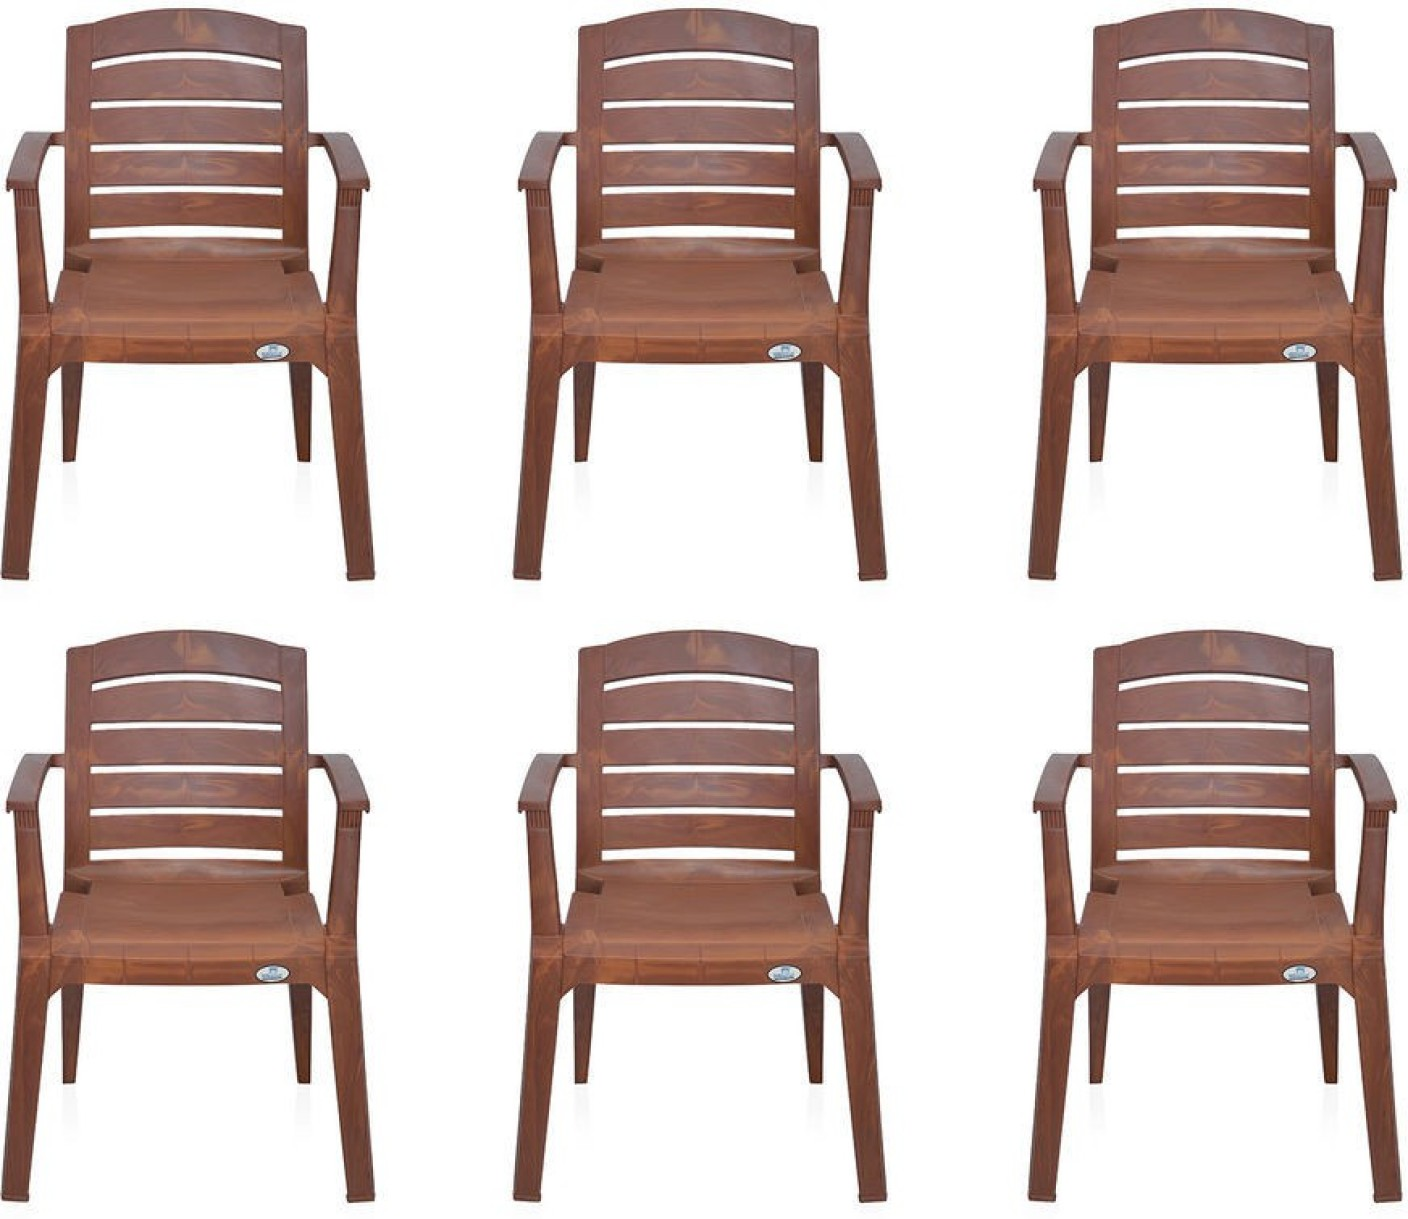 100 Buy Nilkamal Chairs Online India Buy Darcy Bar  : flocpason6kitmgwd pp nilkamal na original imaegyg5jgc8nbe5 from ll100proof.com size 1408 x 1219 jpeg 202kB